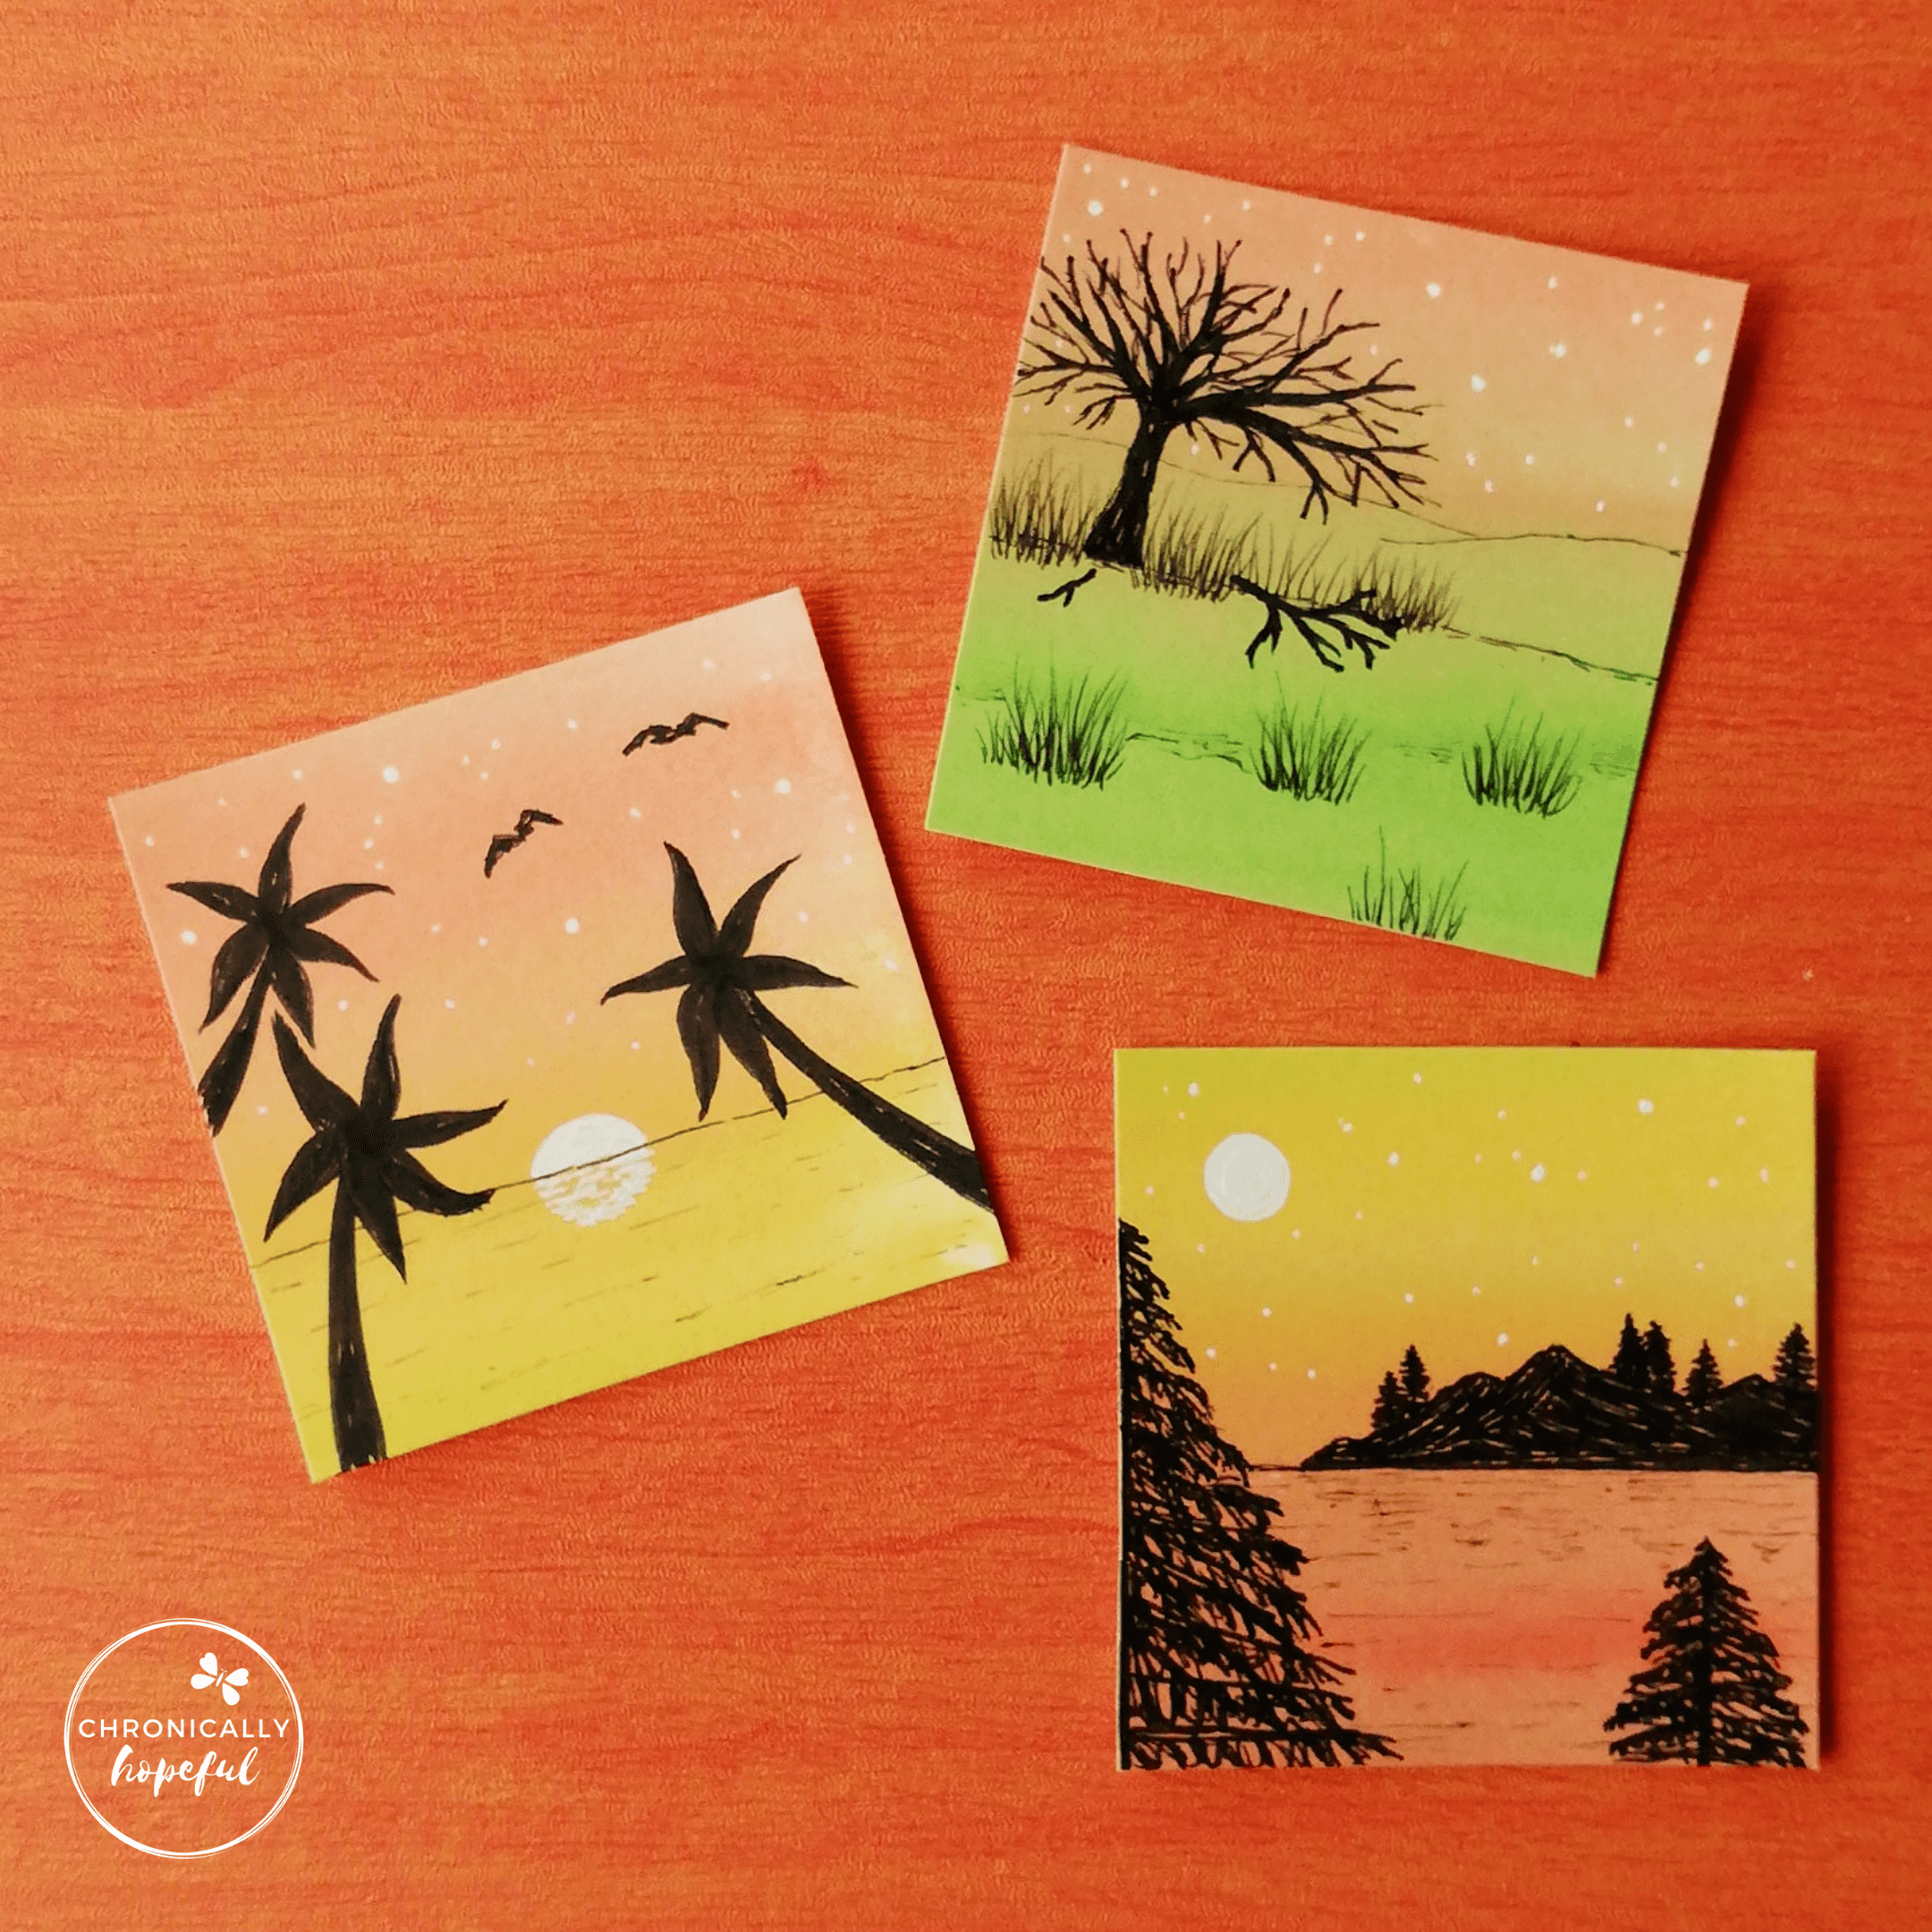 Three 6x6cm mini cards, painted with sunset colours, each with a sunset scene drawn on with black ink.